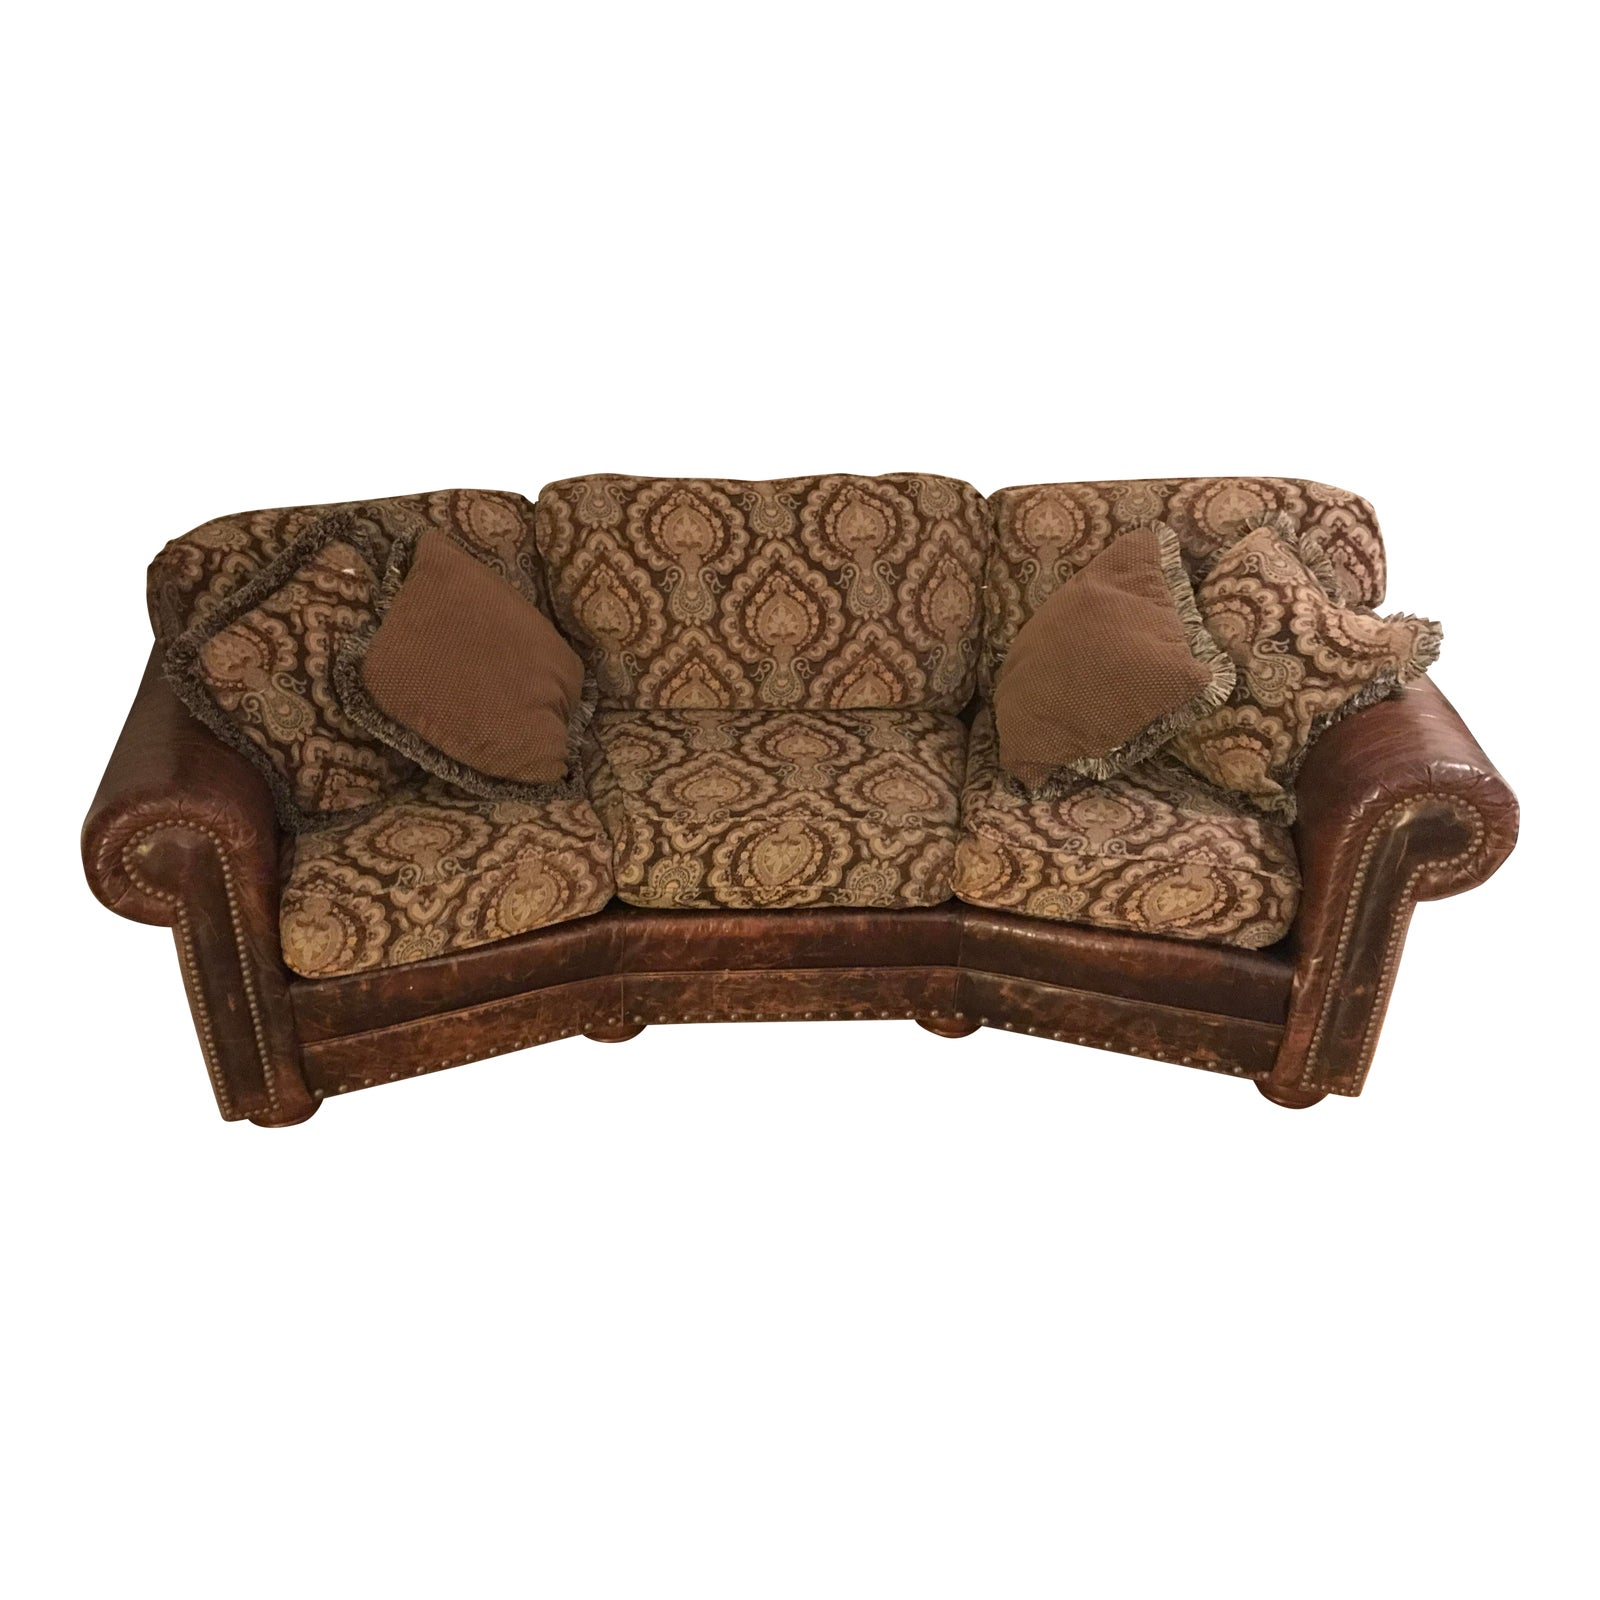 Ricardo Leather Upholstered Conversation Sofa